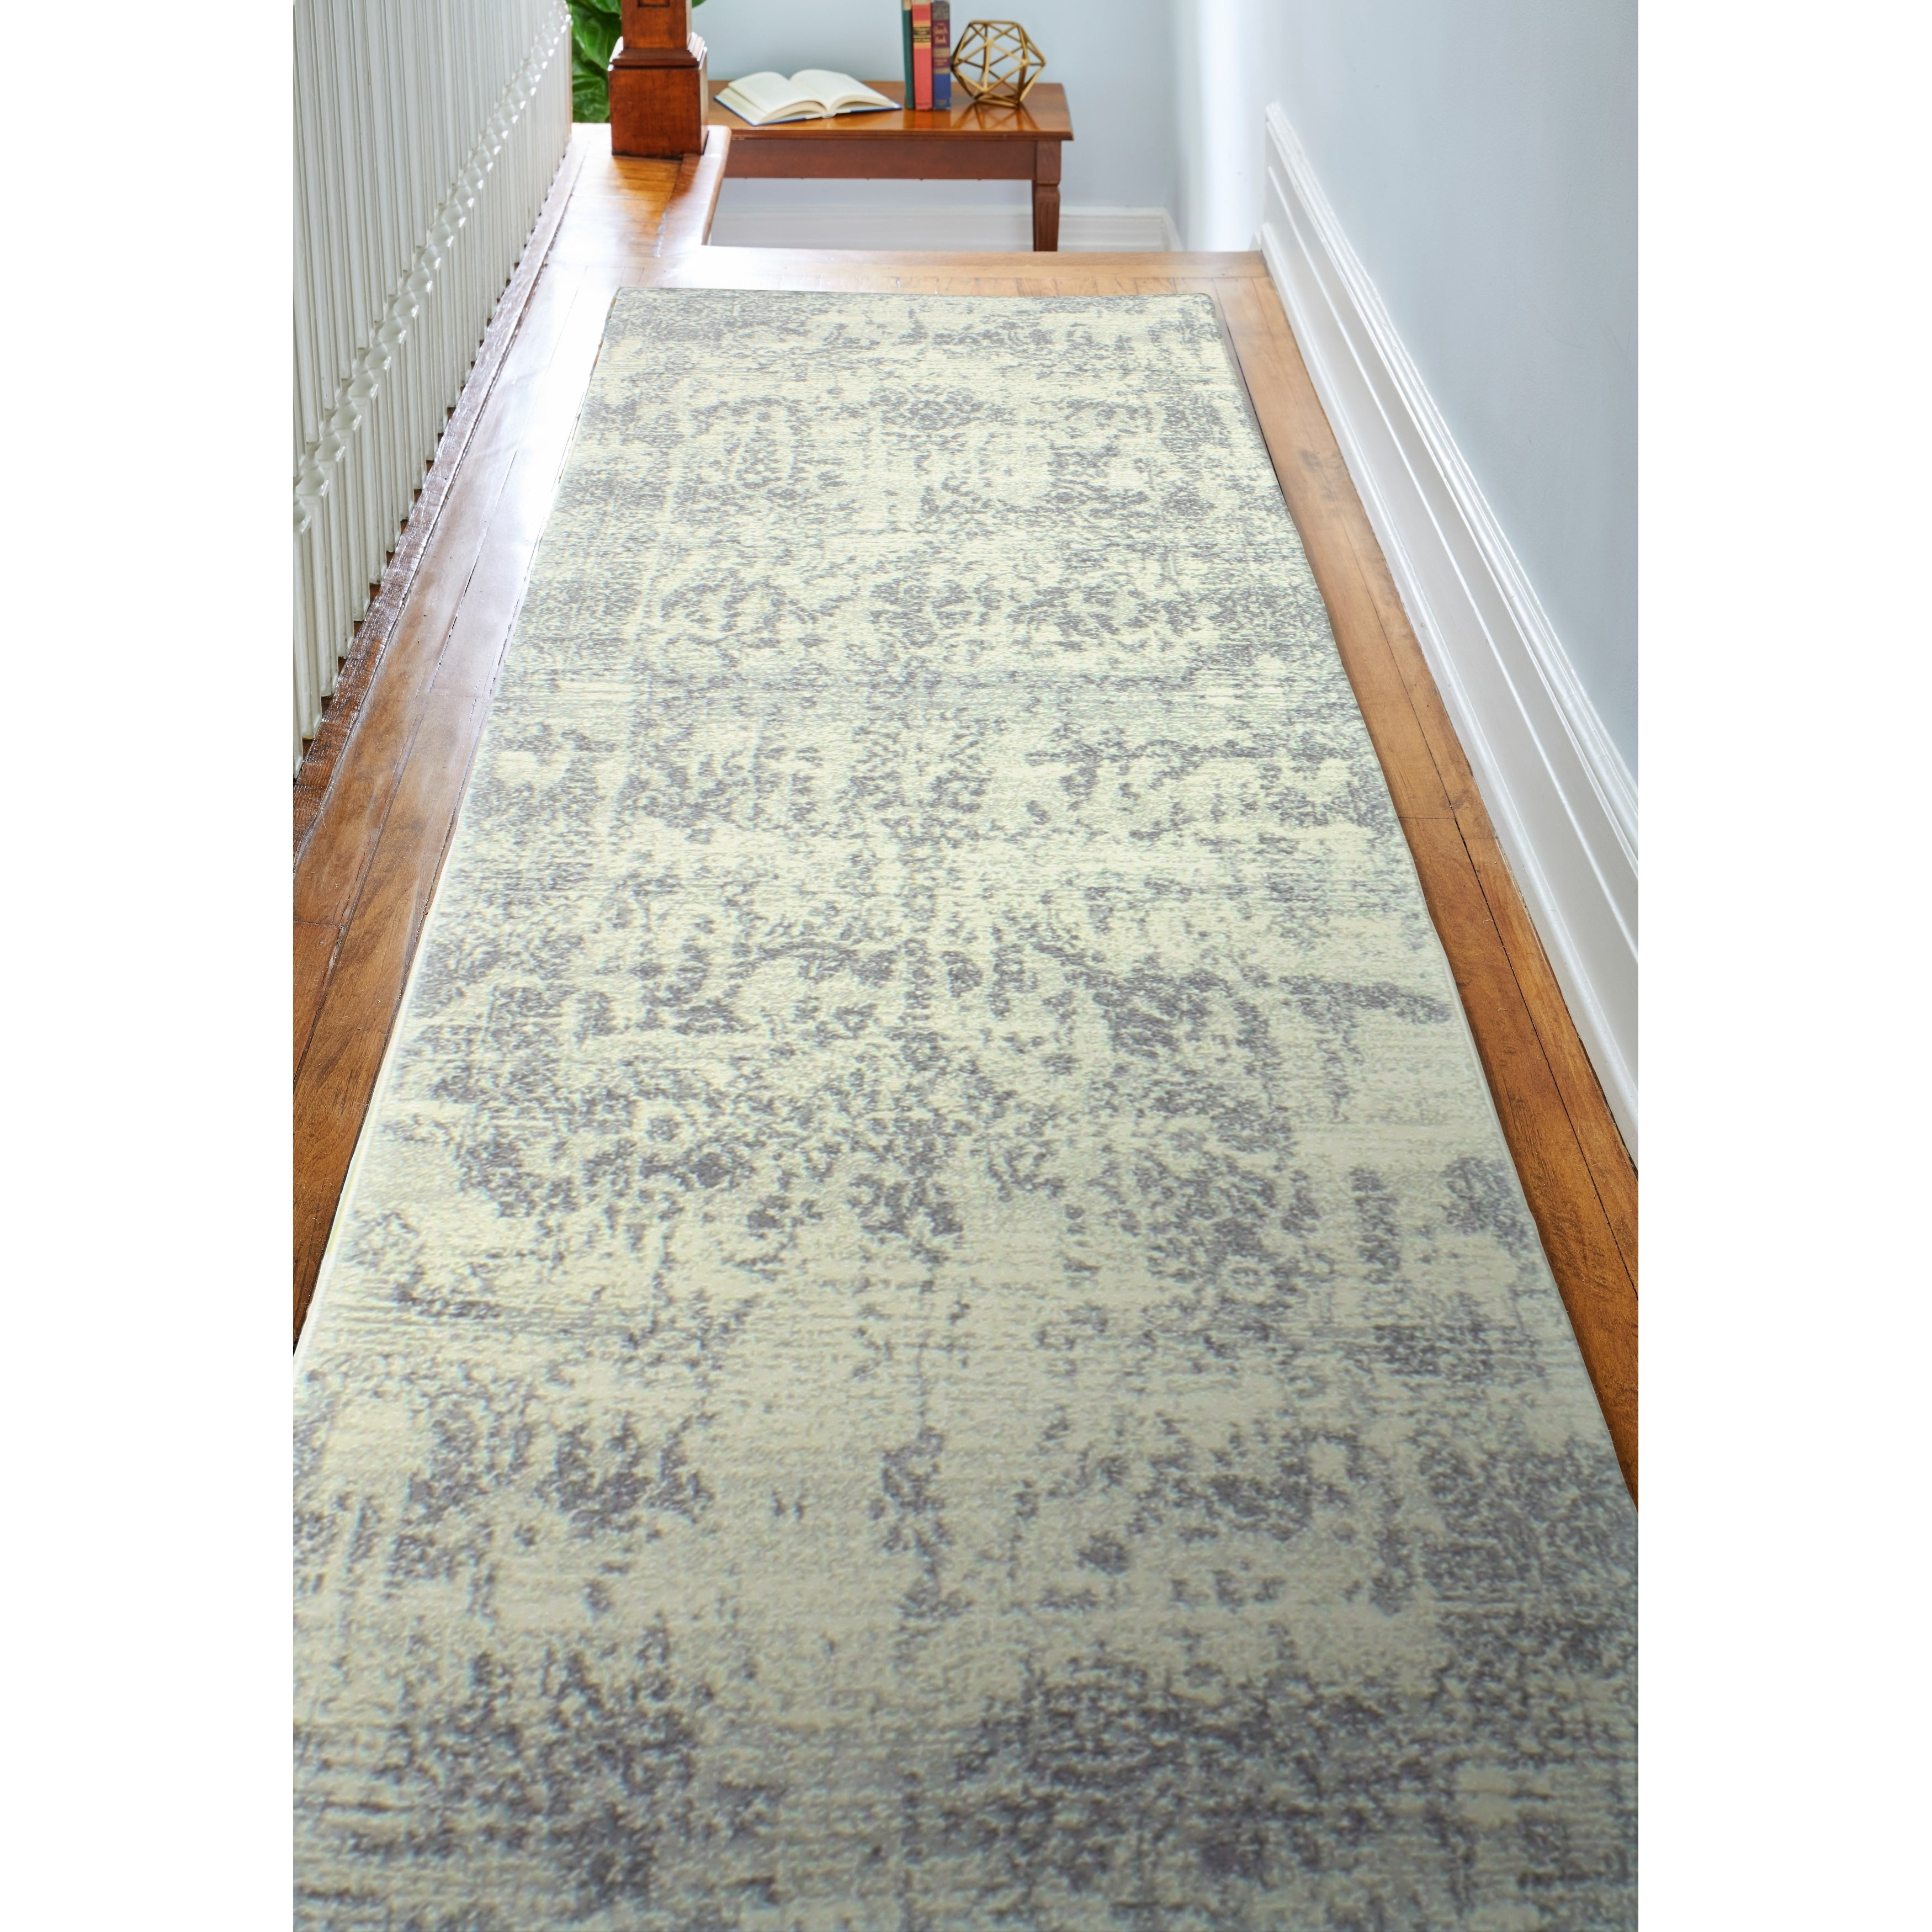 Aurora Ivory/Silver Transitional  Area Rug - 26 x 8 Runner (Ivory/Silver - 26 x 8 Runner)